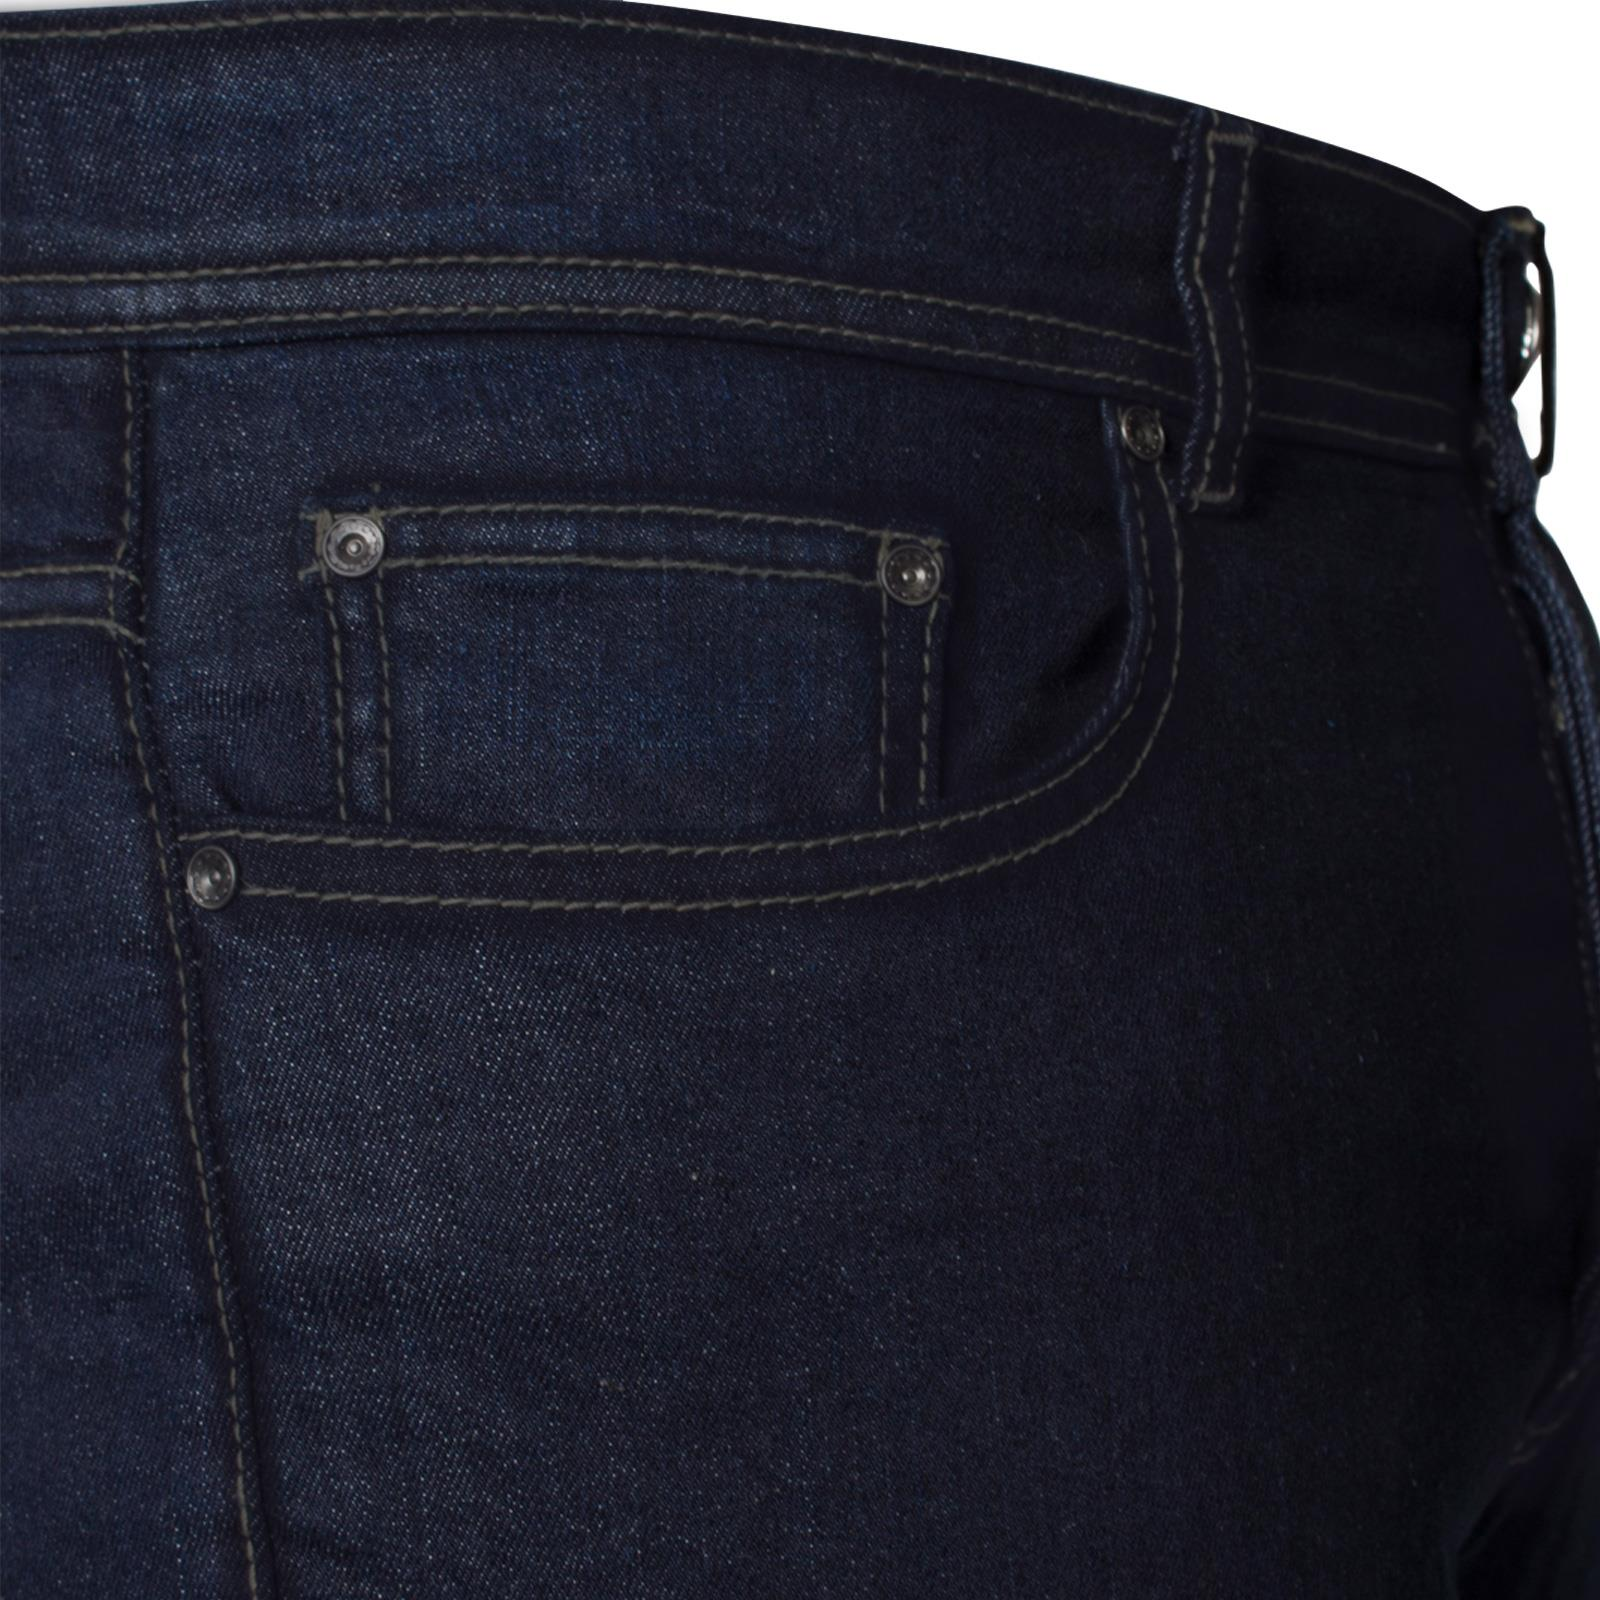 New-Enzo-Mens-Designer-Bootcut-Wide-Leg-Jeans-Flared-Stretch-Denim-All-Waists thumbnail 20